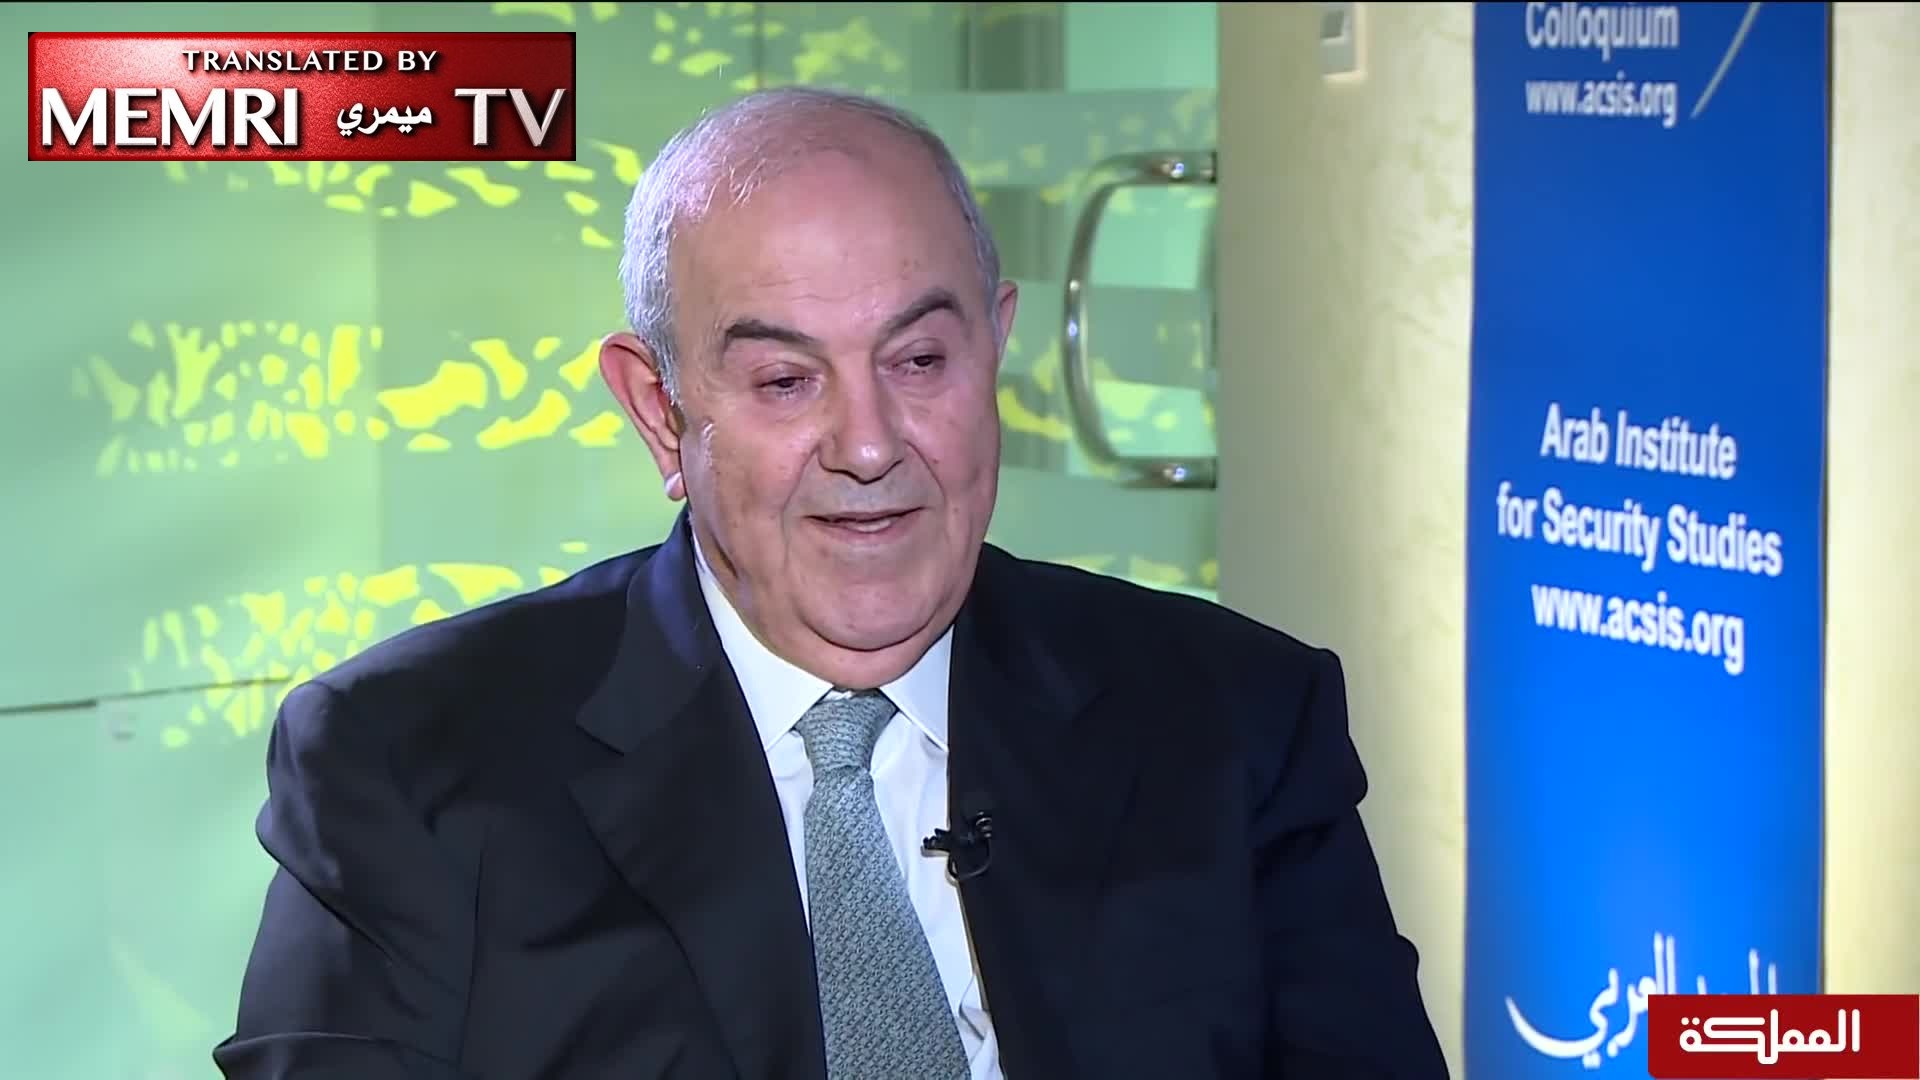 Former Iraqi PM Ayad Allawi: The Protest Are in Response to Iranian Influence in Iraq; The Situation Will Worsen